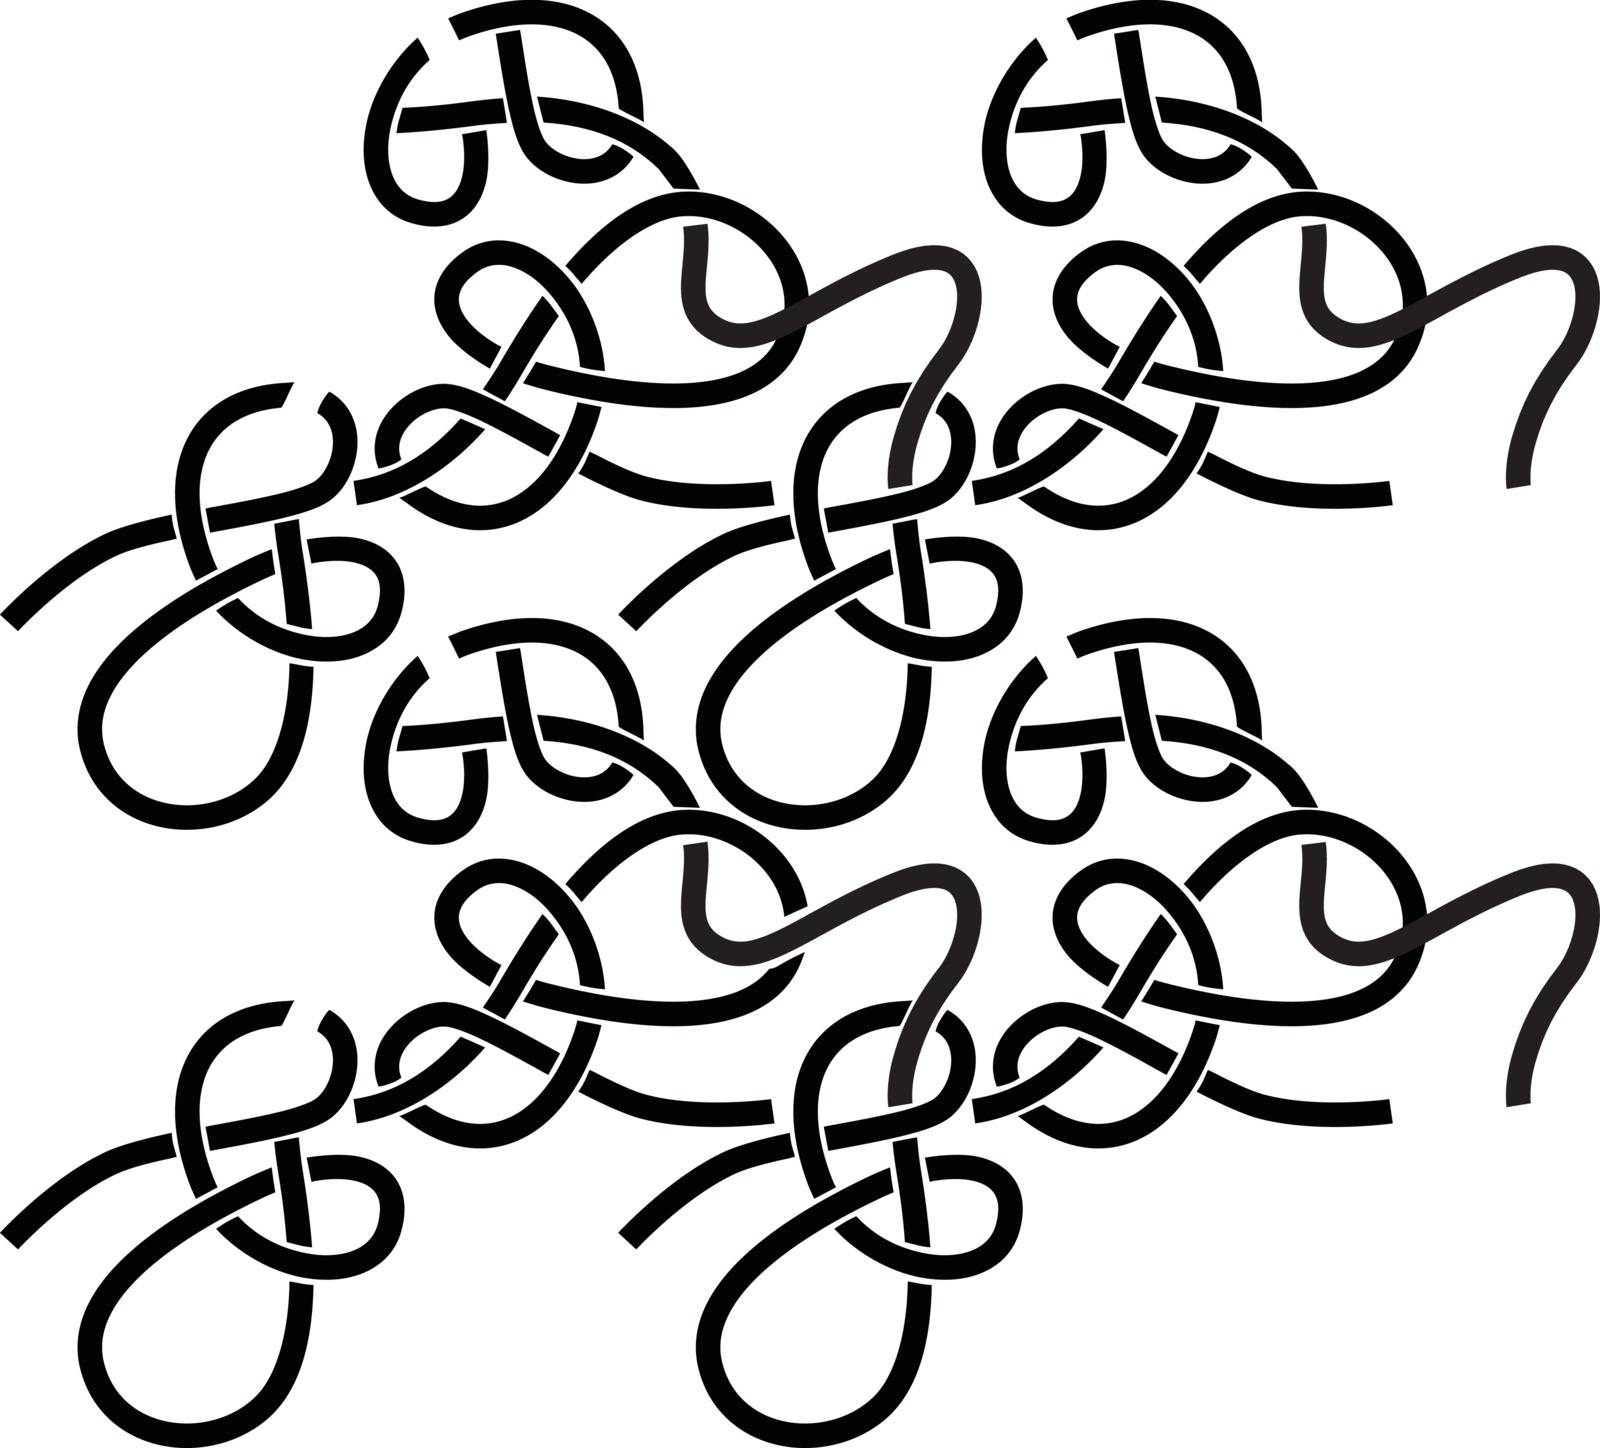 Seamles pattern made of illustrated entangled black lines on white